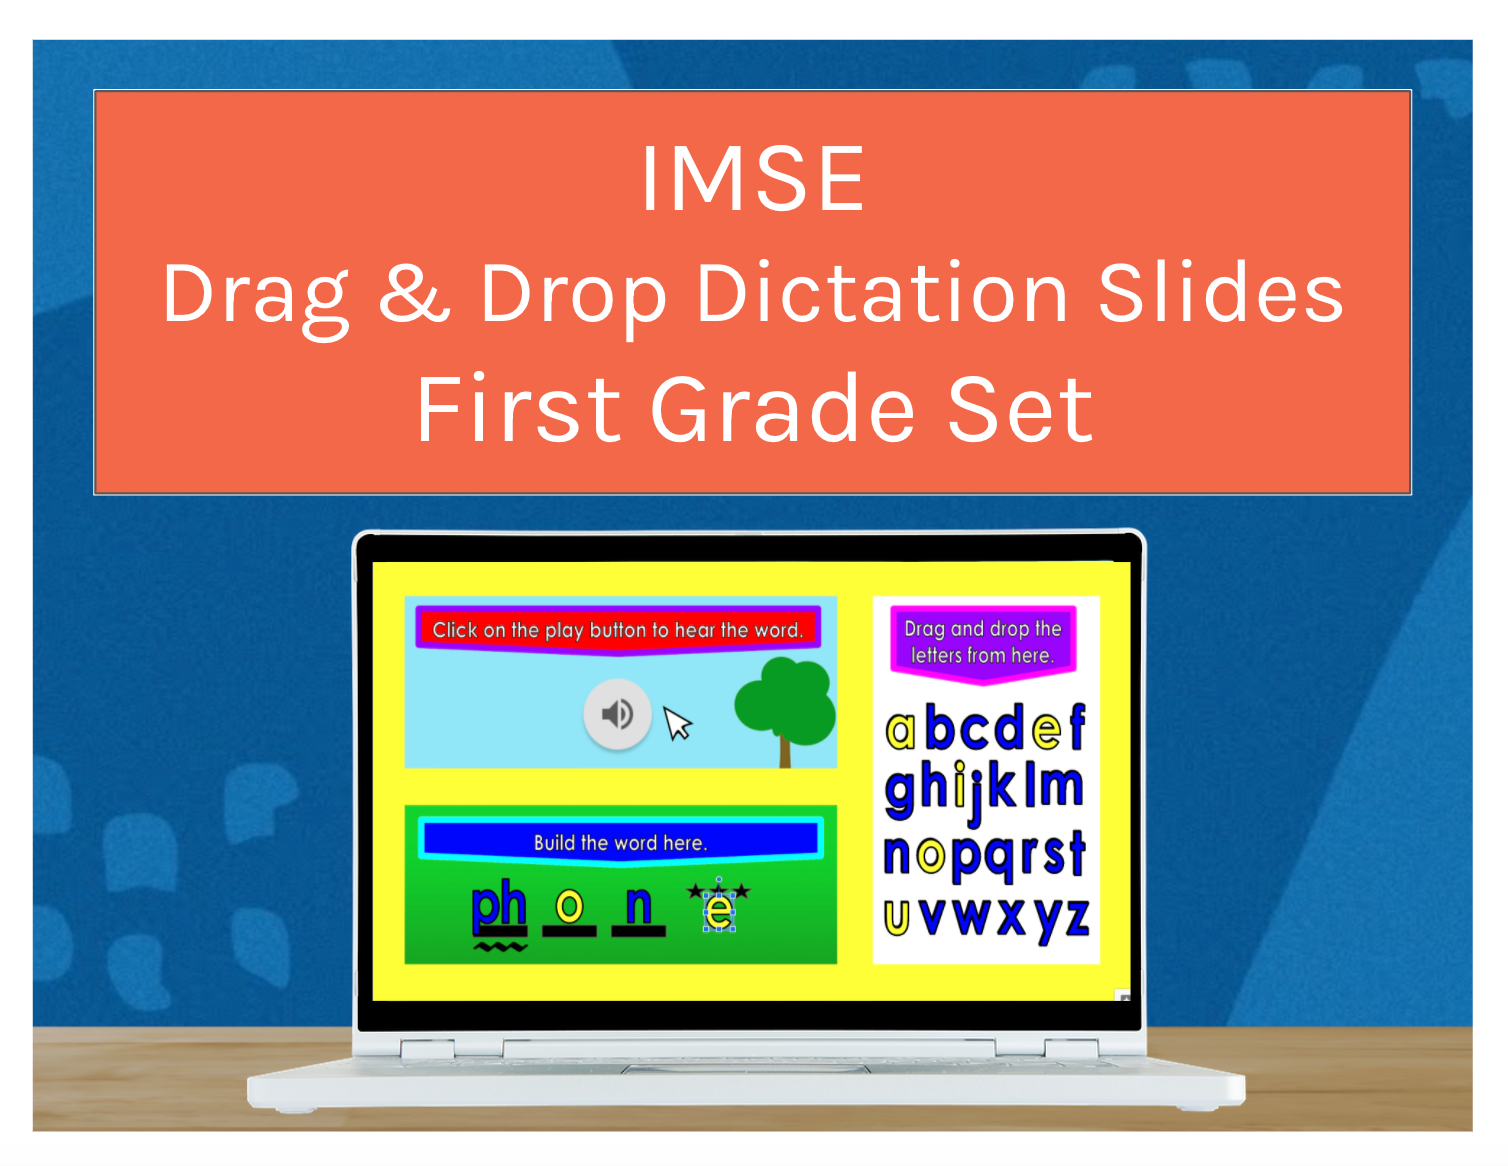 IMSE Drag & Drop Grade 1 Dictation Slides